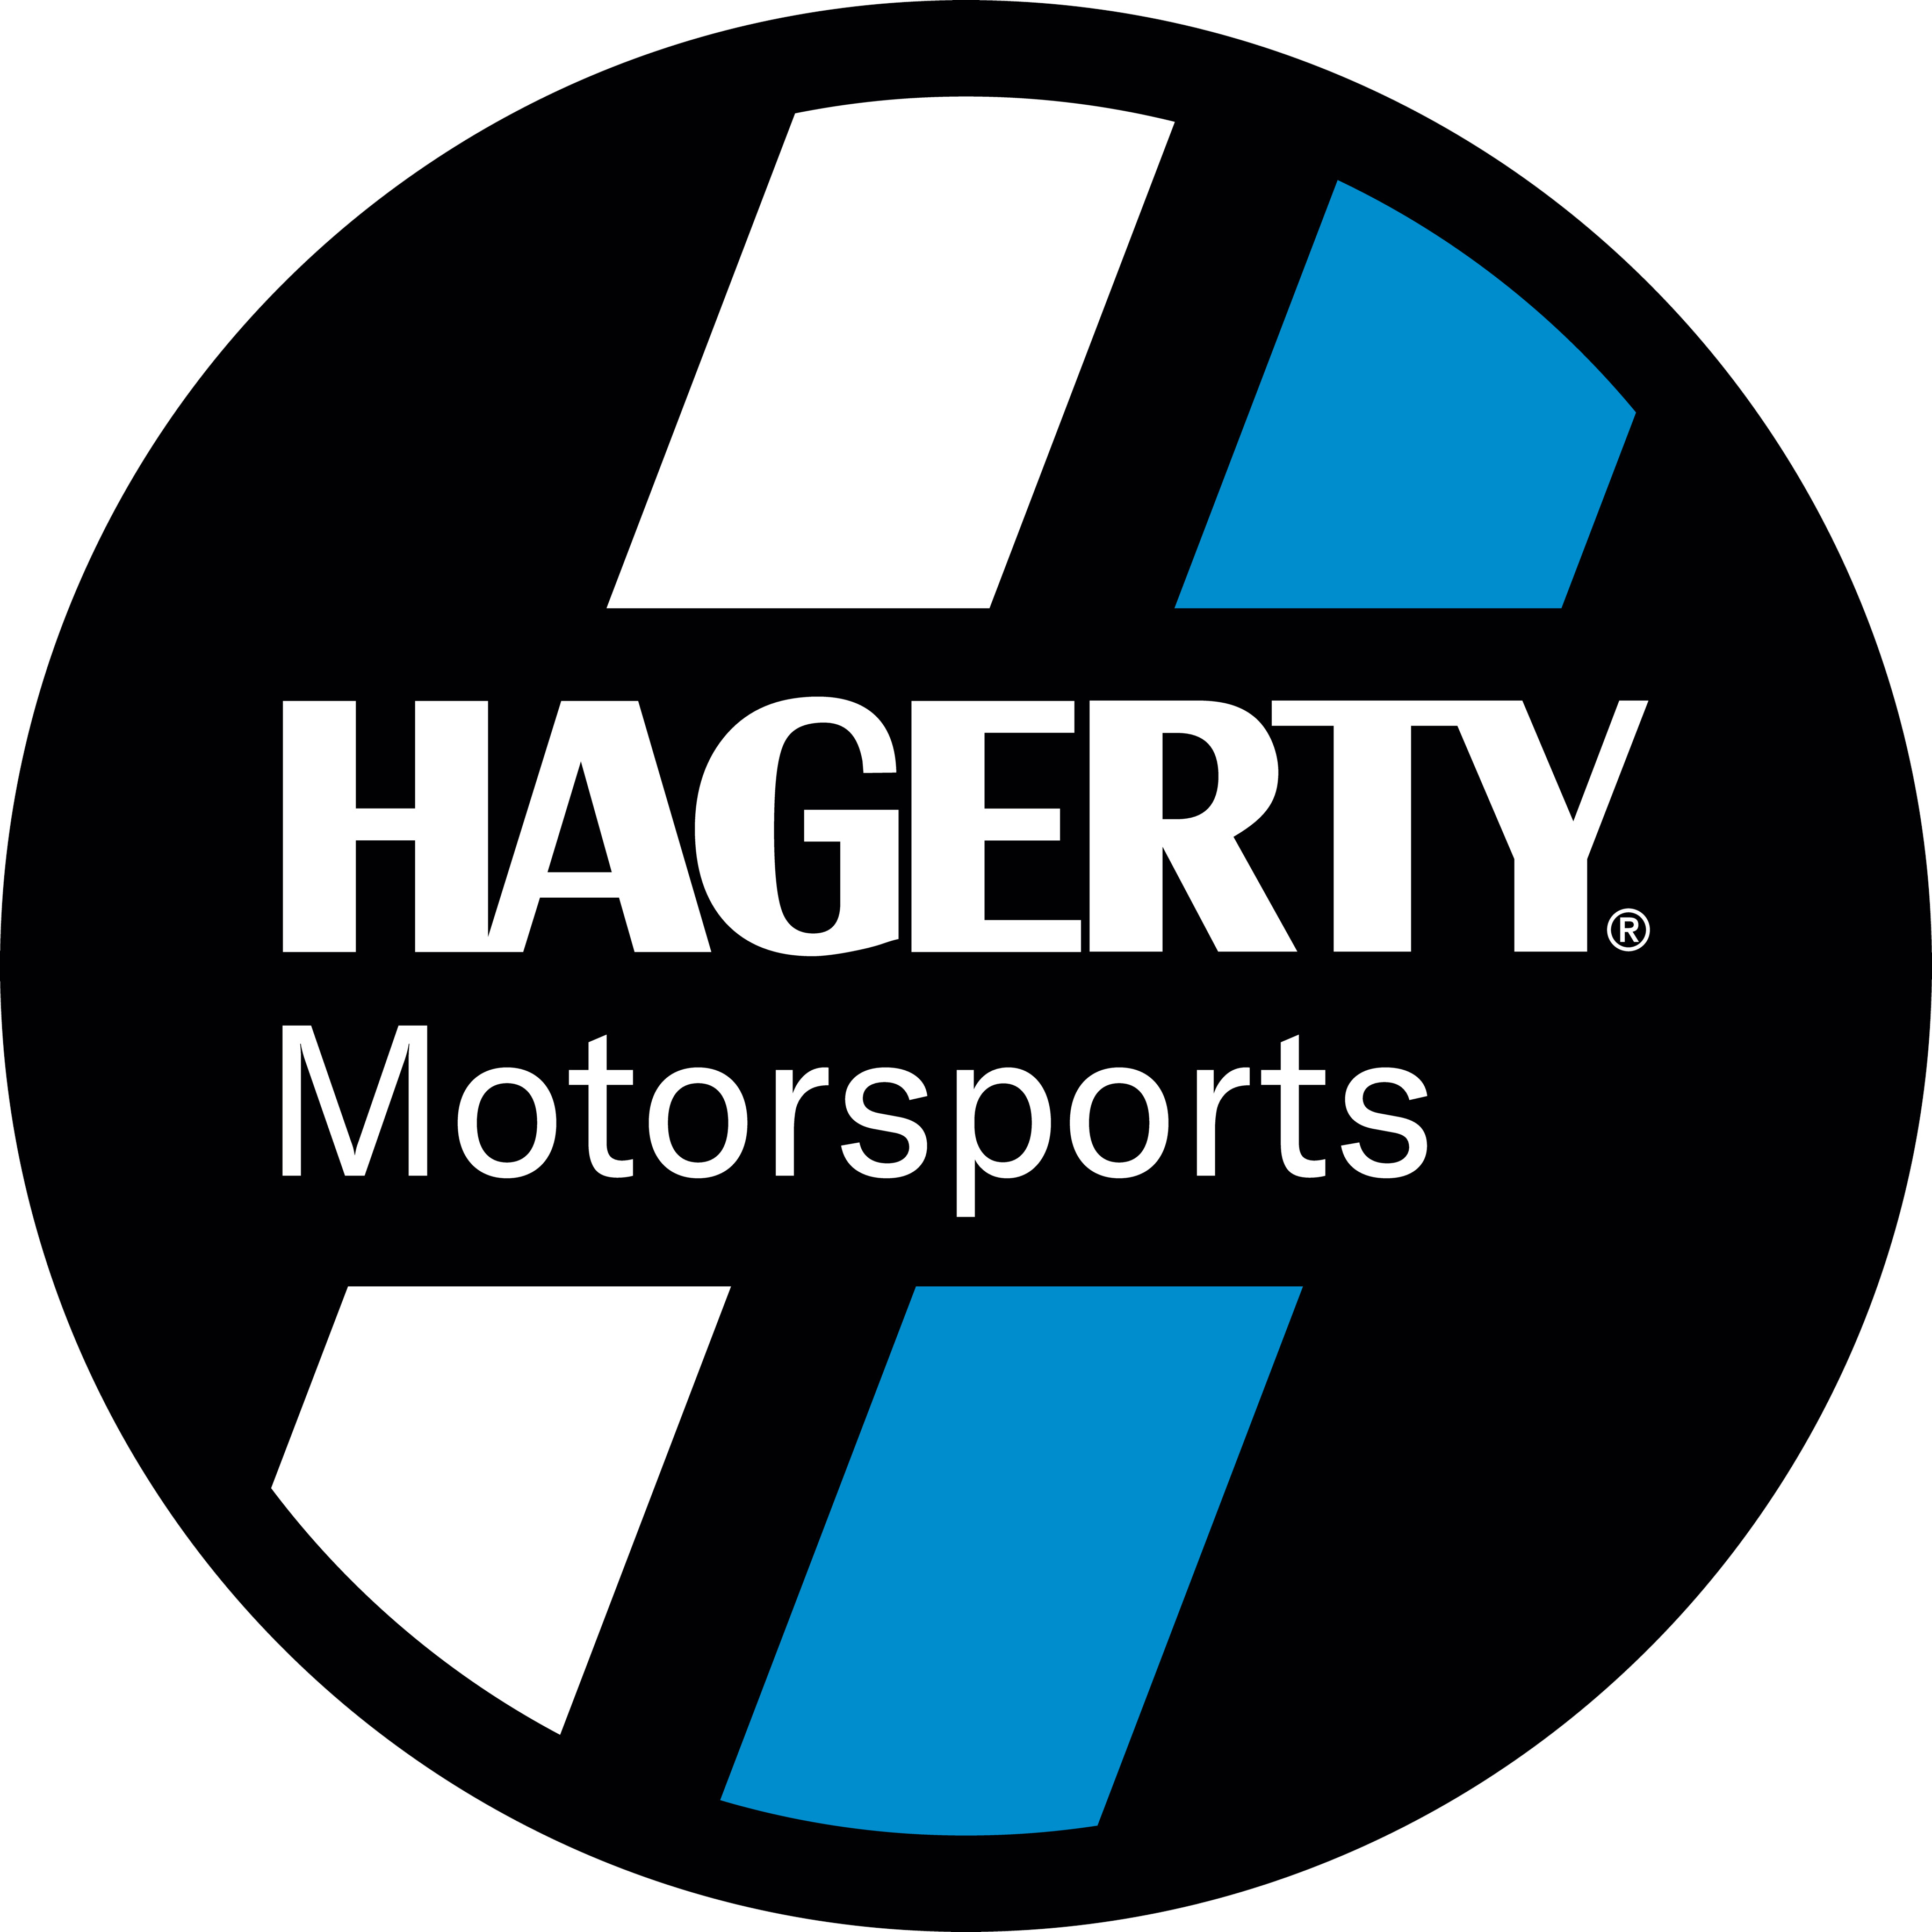 More about HAGERTY